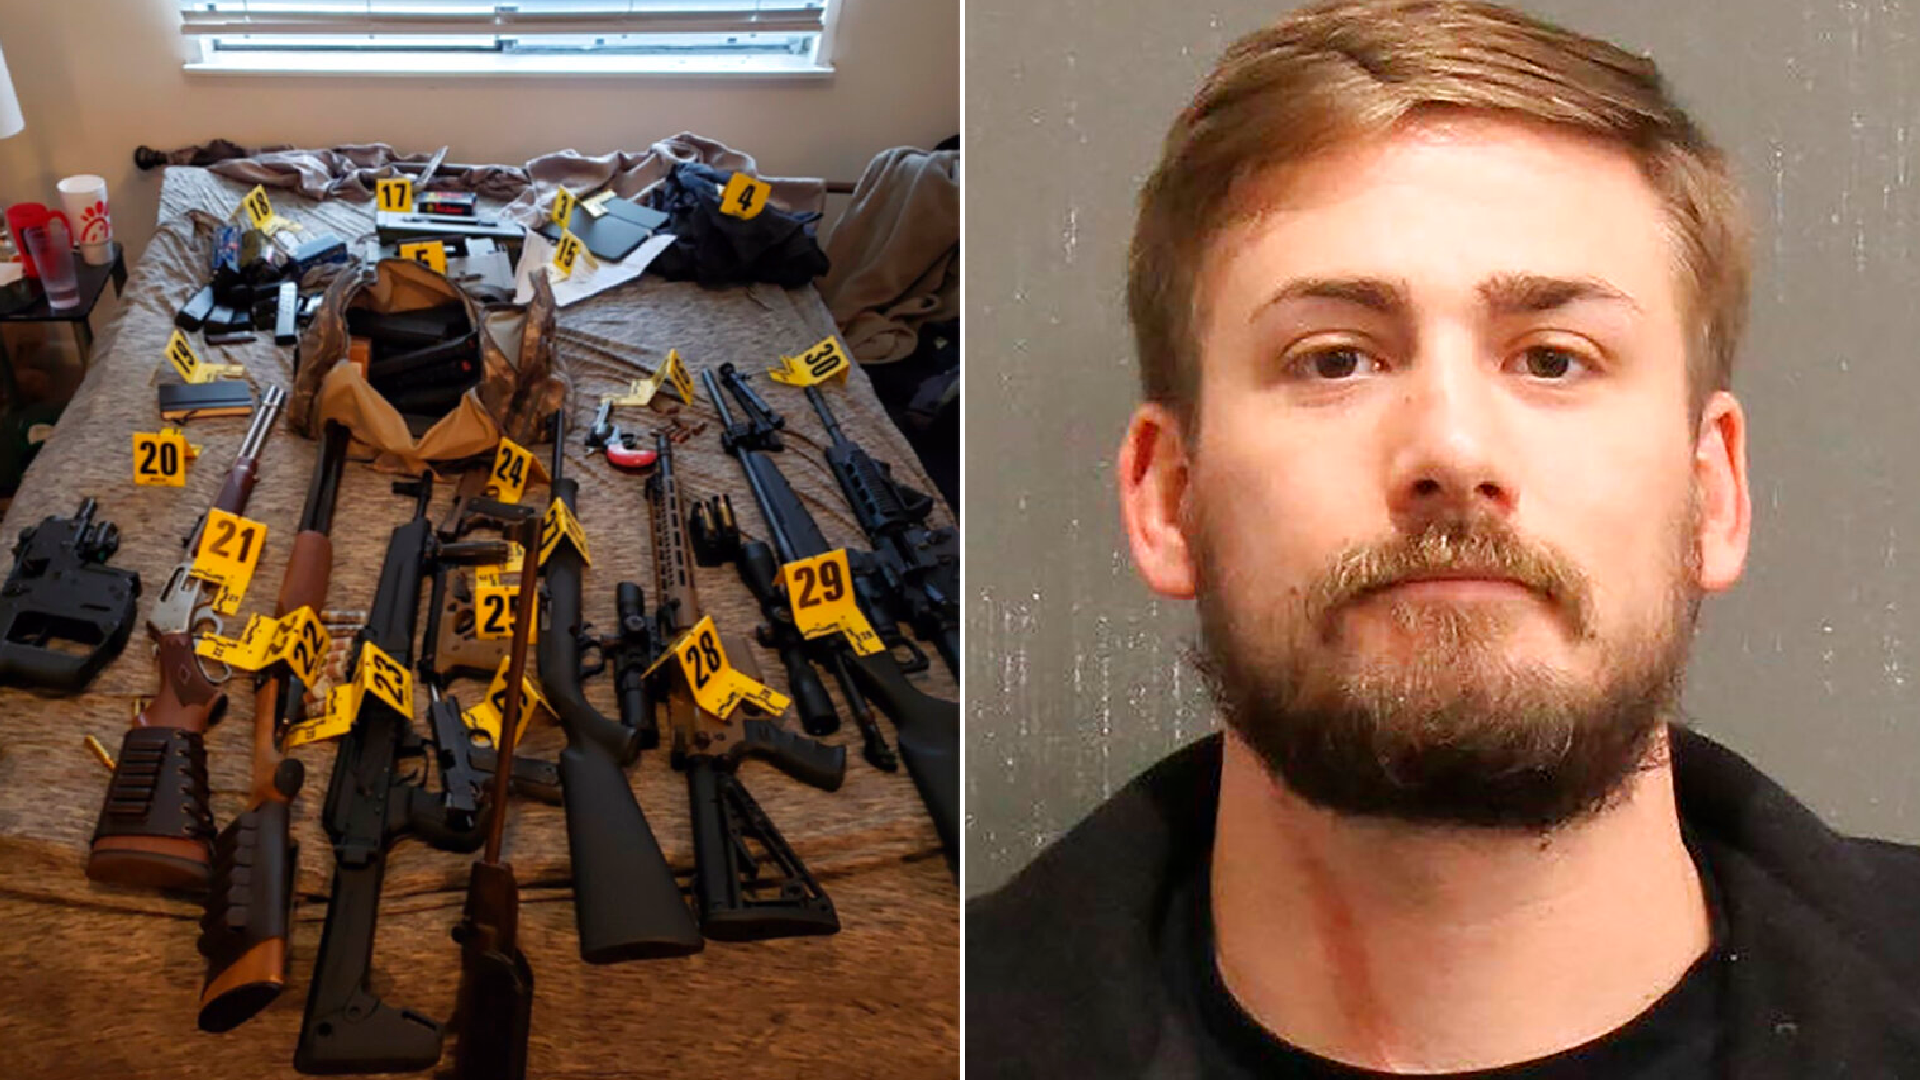 This photo provided by Metro Government of Nashville and Davidson County shows Eric Gavelek Munchel. Munchel. On the left, an evidence photo showing assault rifles that were found during a search of Eric Munchel's home. (U.S. Attorney for the Middle District of Tennessee via AP)